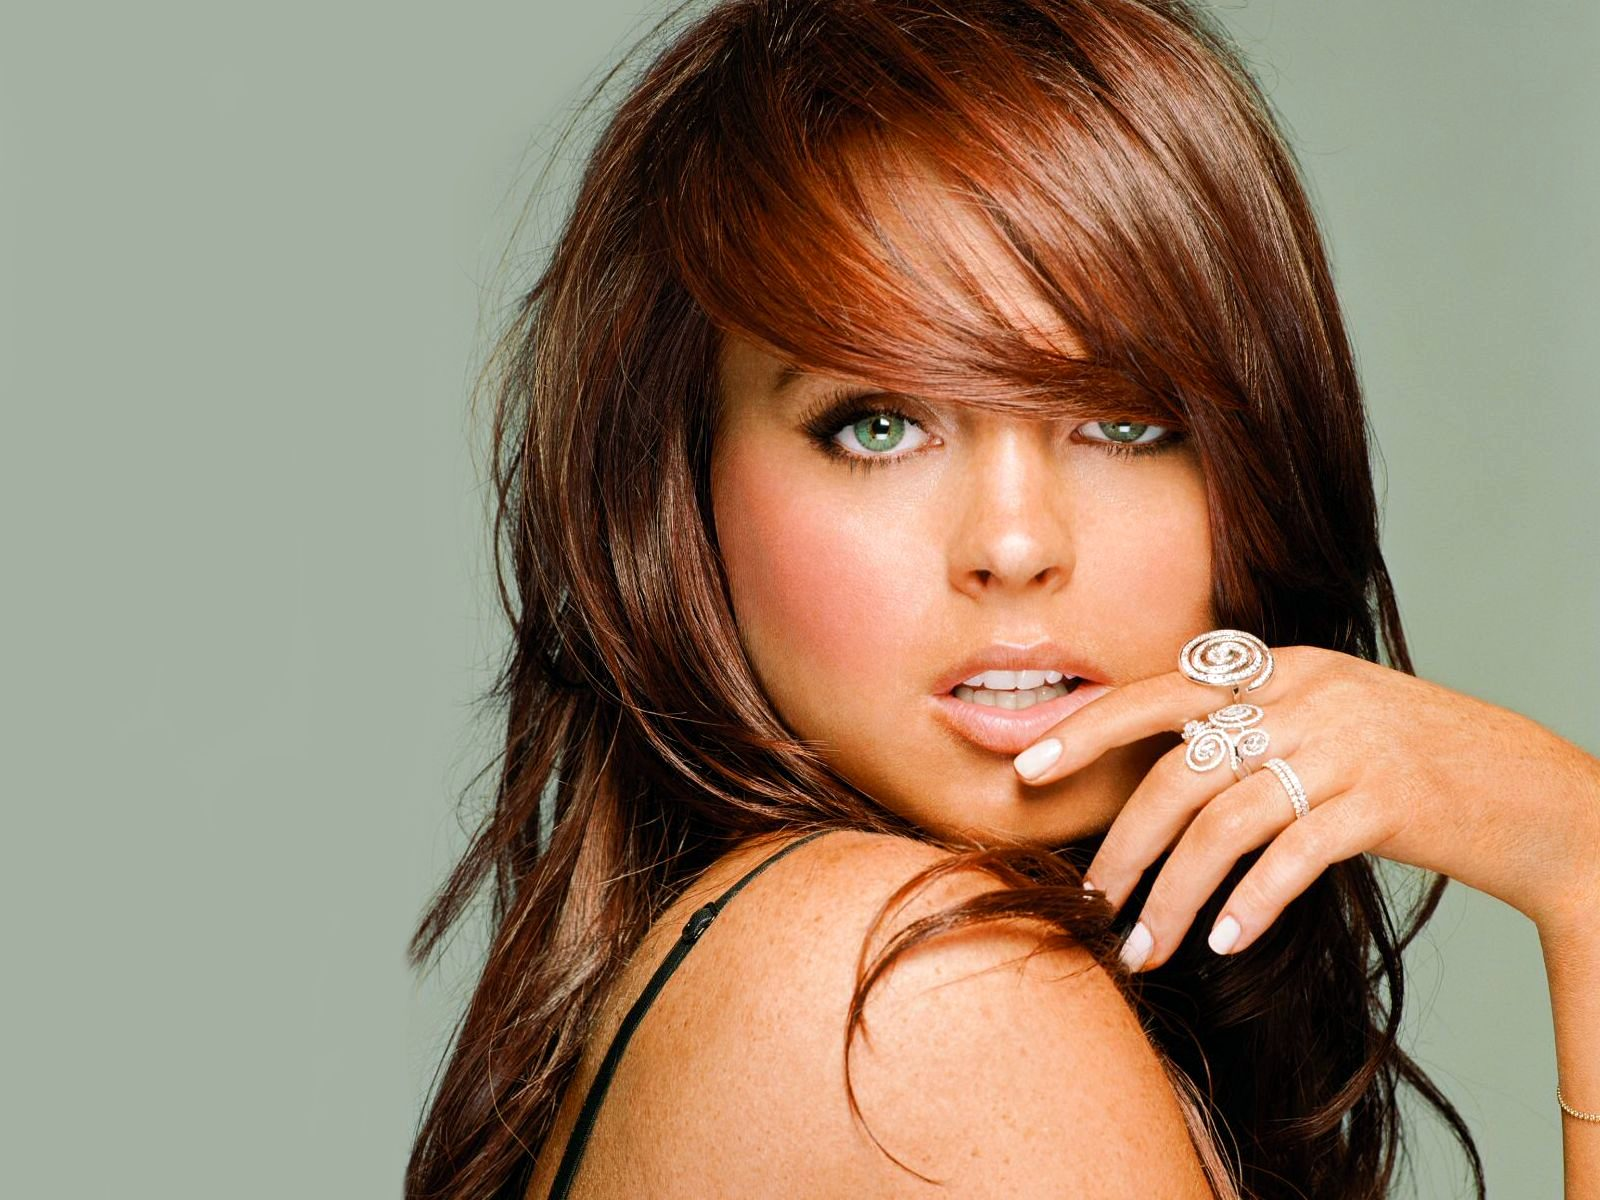 Chatter Busy: Lindsay Lohan Quotes